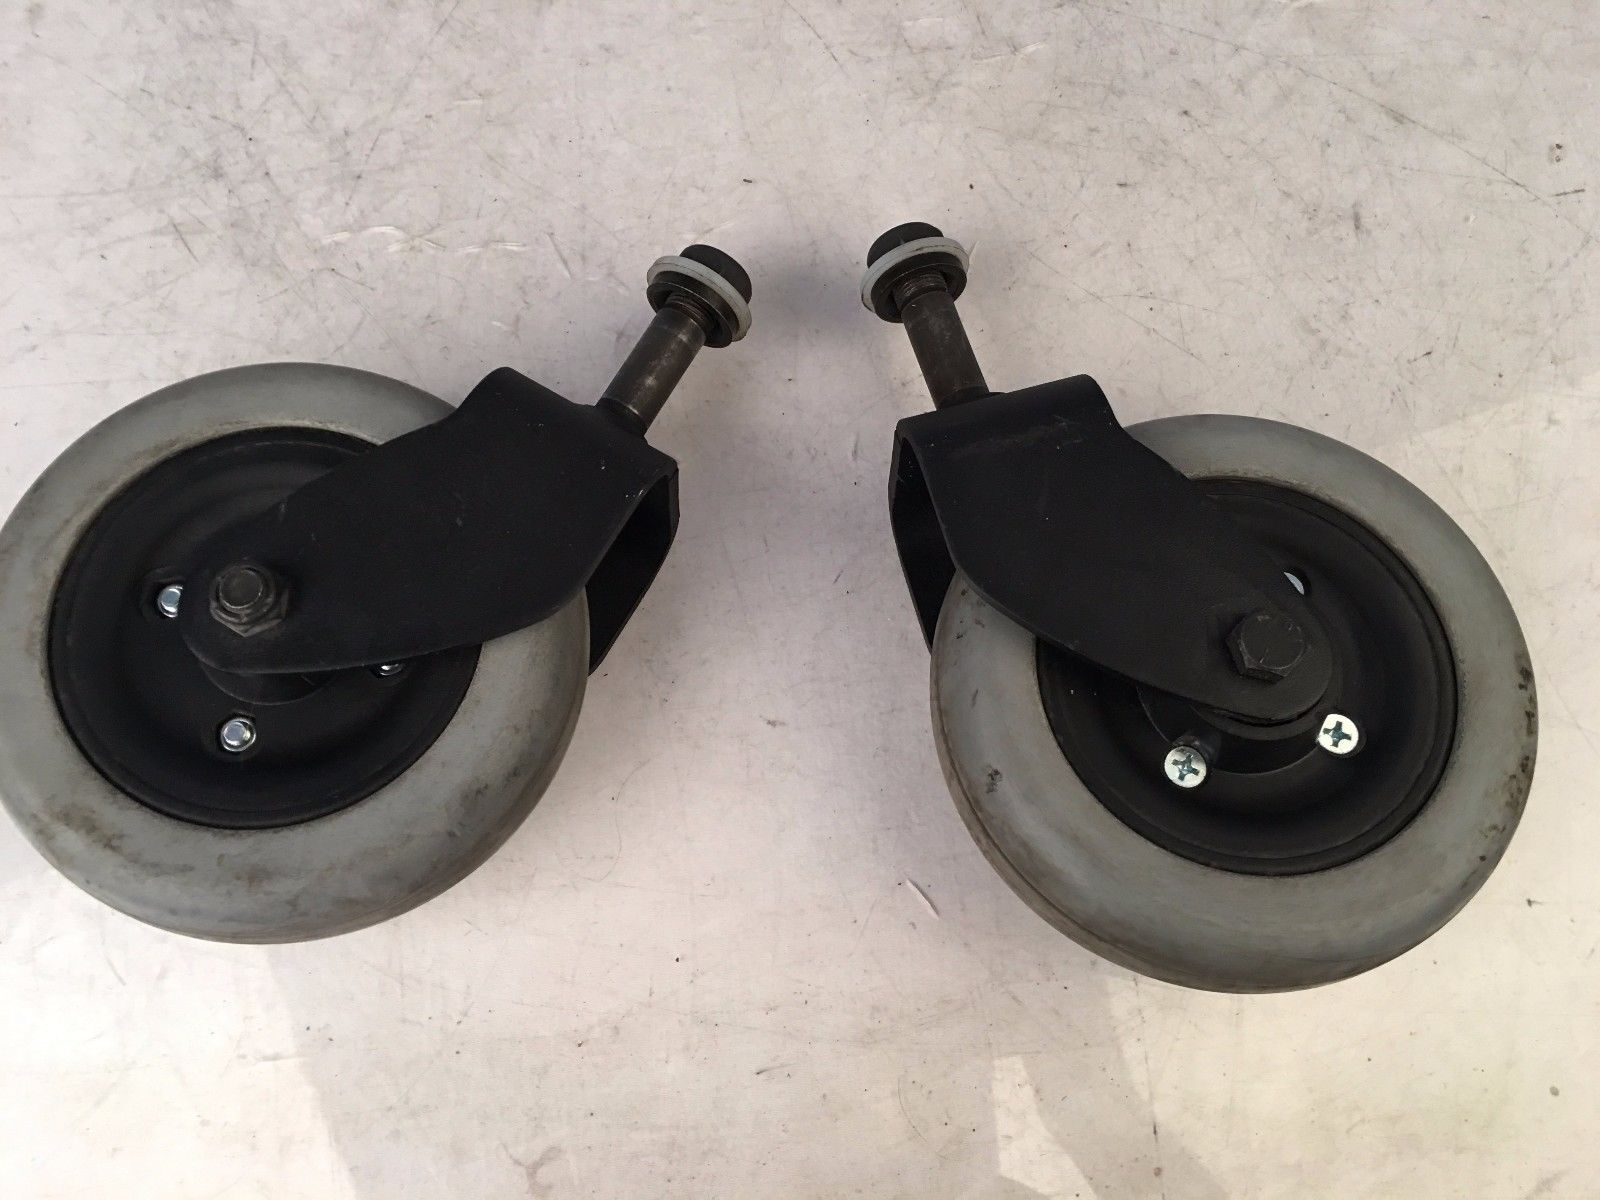 Invacare M-91 Surestep Caster Arms w/ Wheels for Power Wheelchairs